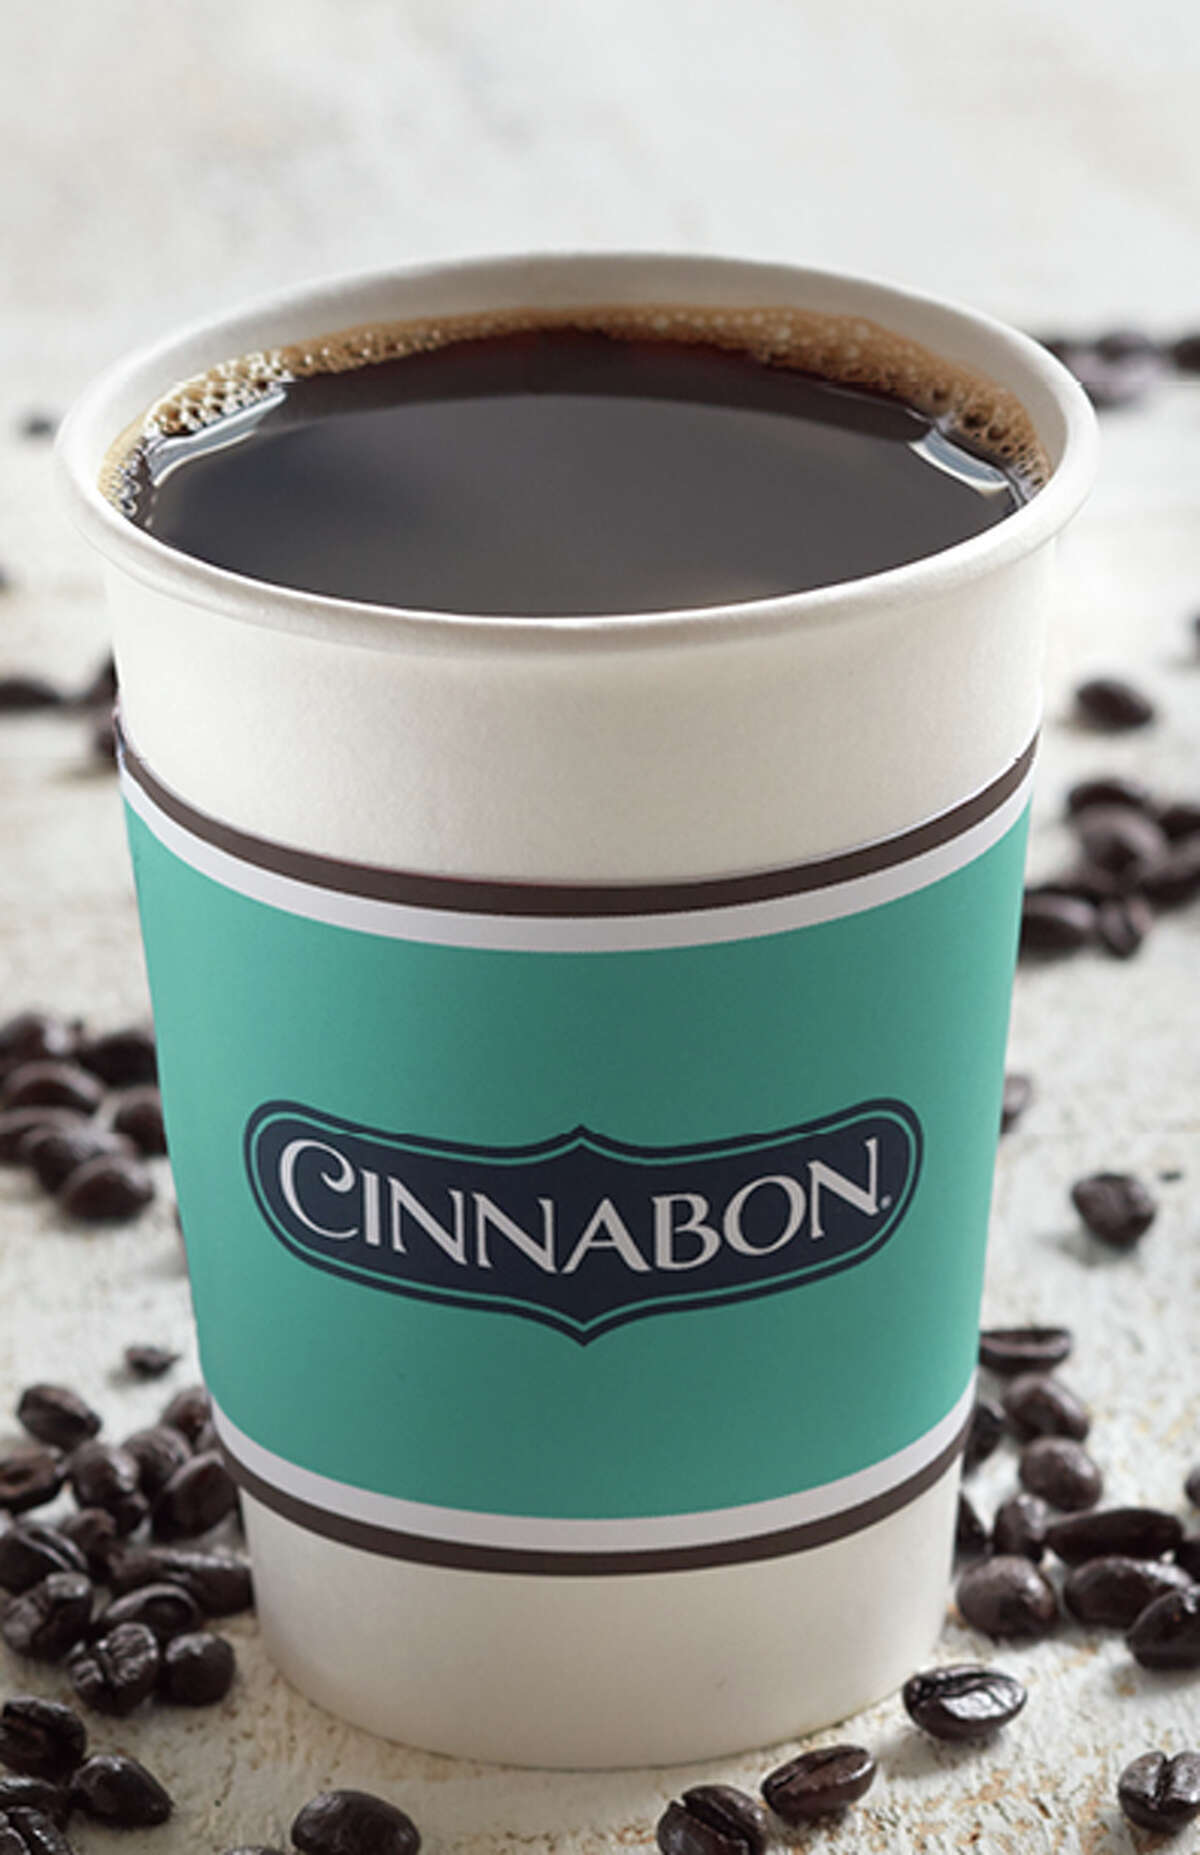 CinnabonCinnabon will offer customers a free 12 oz signature hot coffee with no purchase necessary at mall bakery locations in the Houston area.